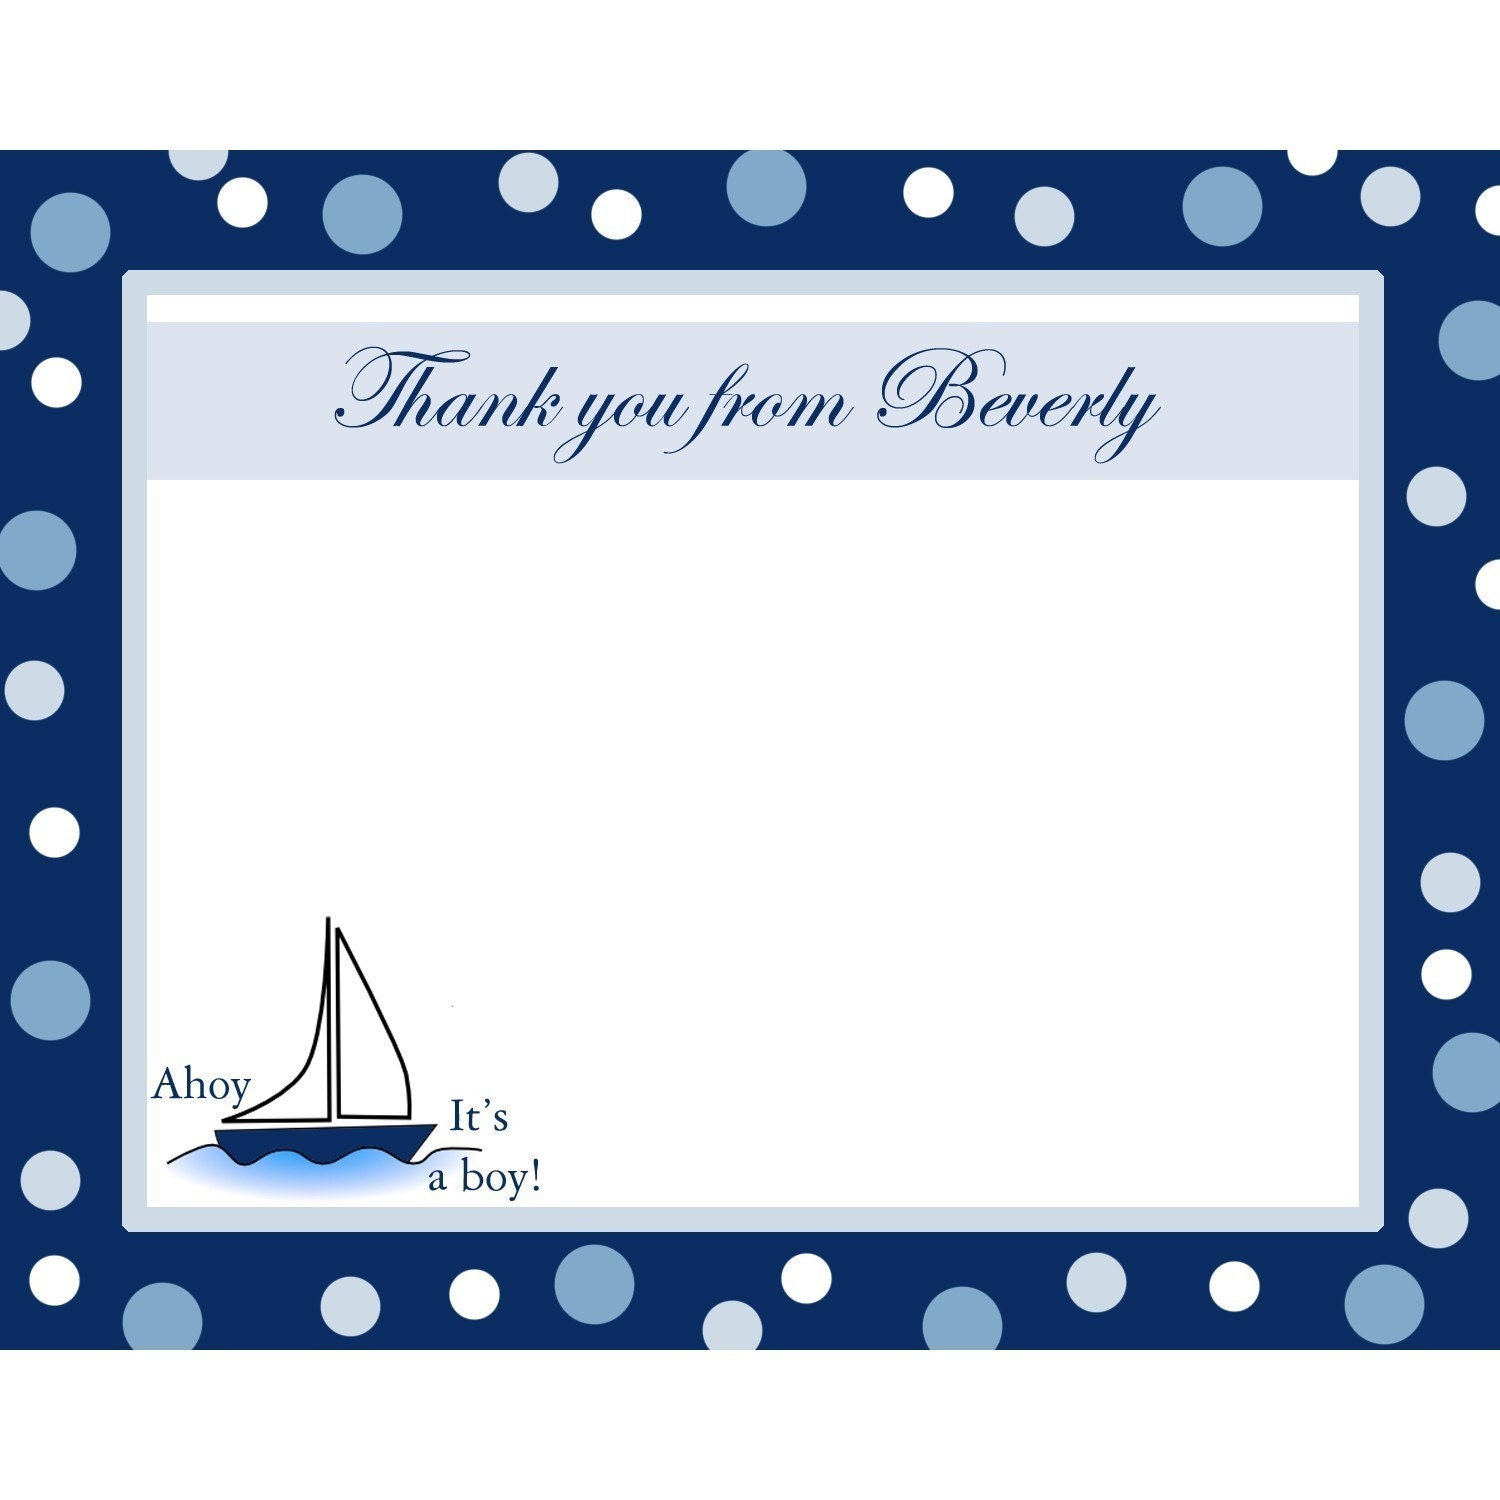 20 Personalized Baby Shower Thank You Cards AHOY ITS A BOY